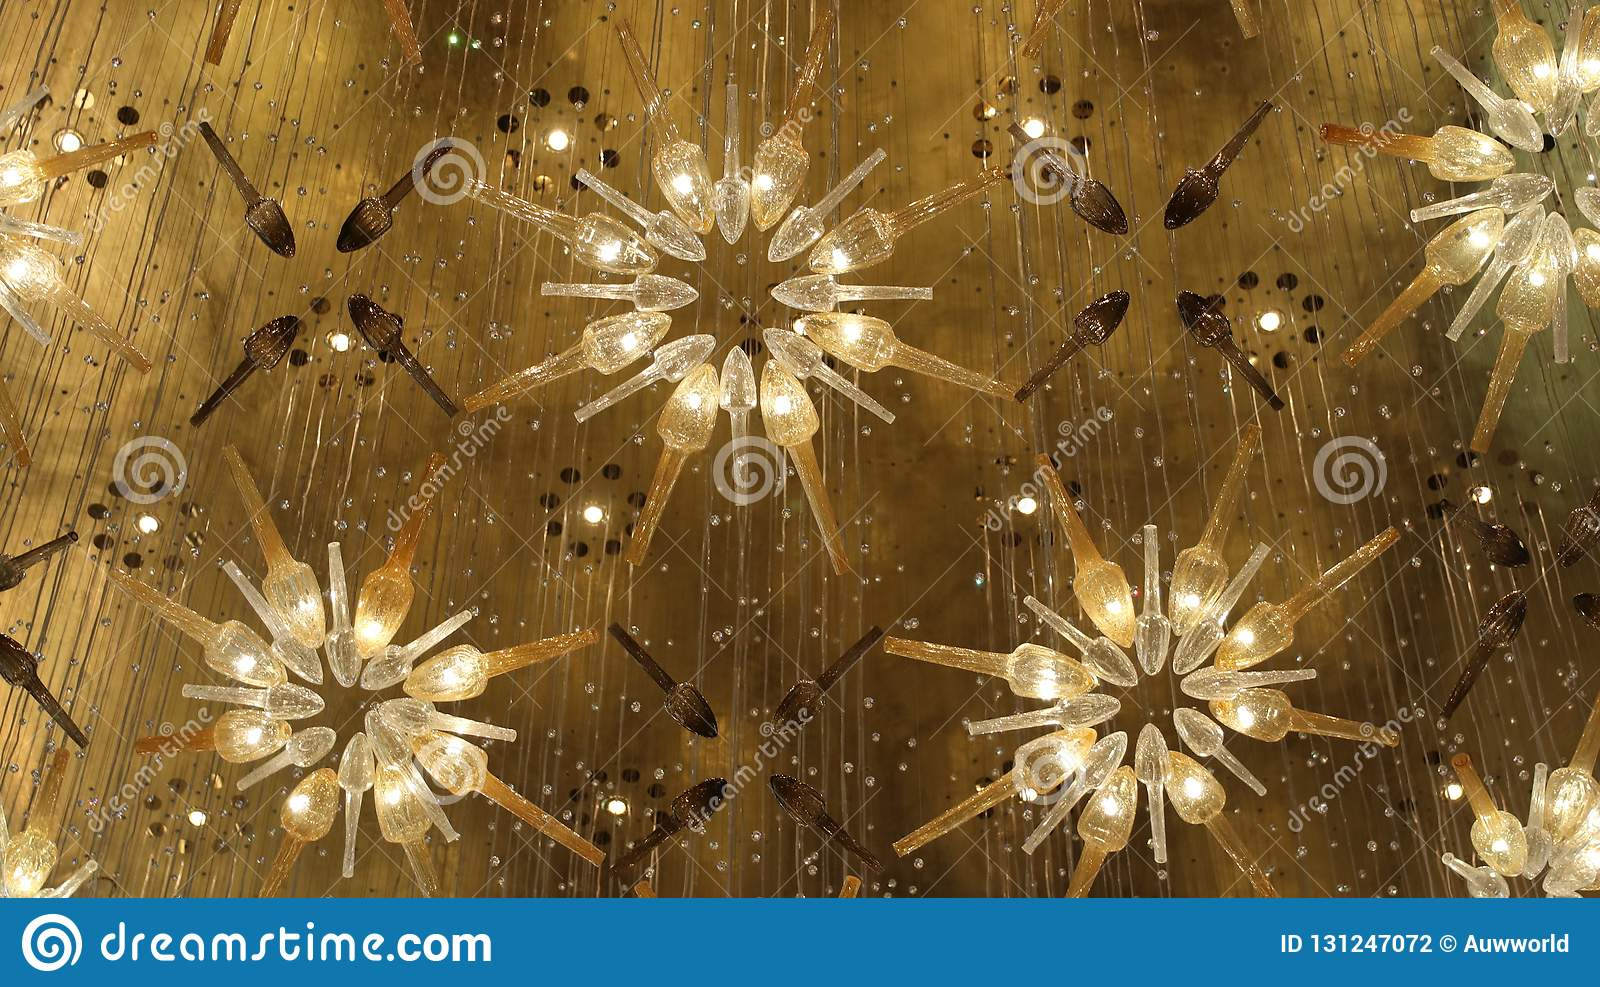 The Art Of Decorating With Chandeliers In The Mall. Stock ...